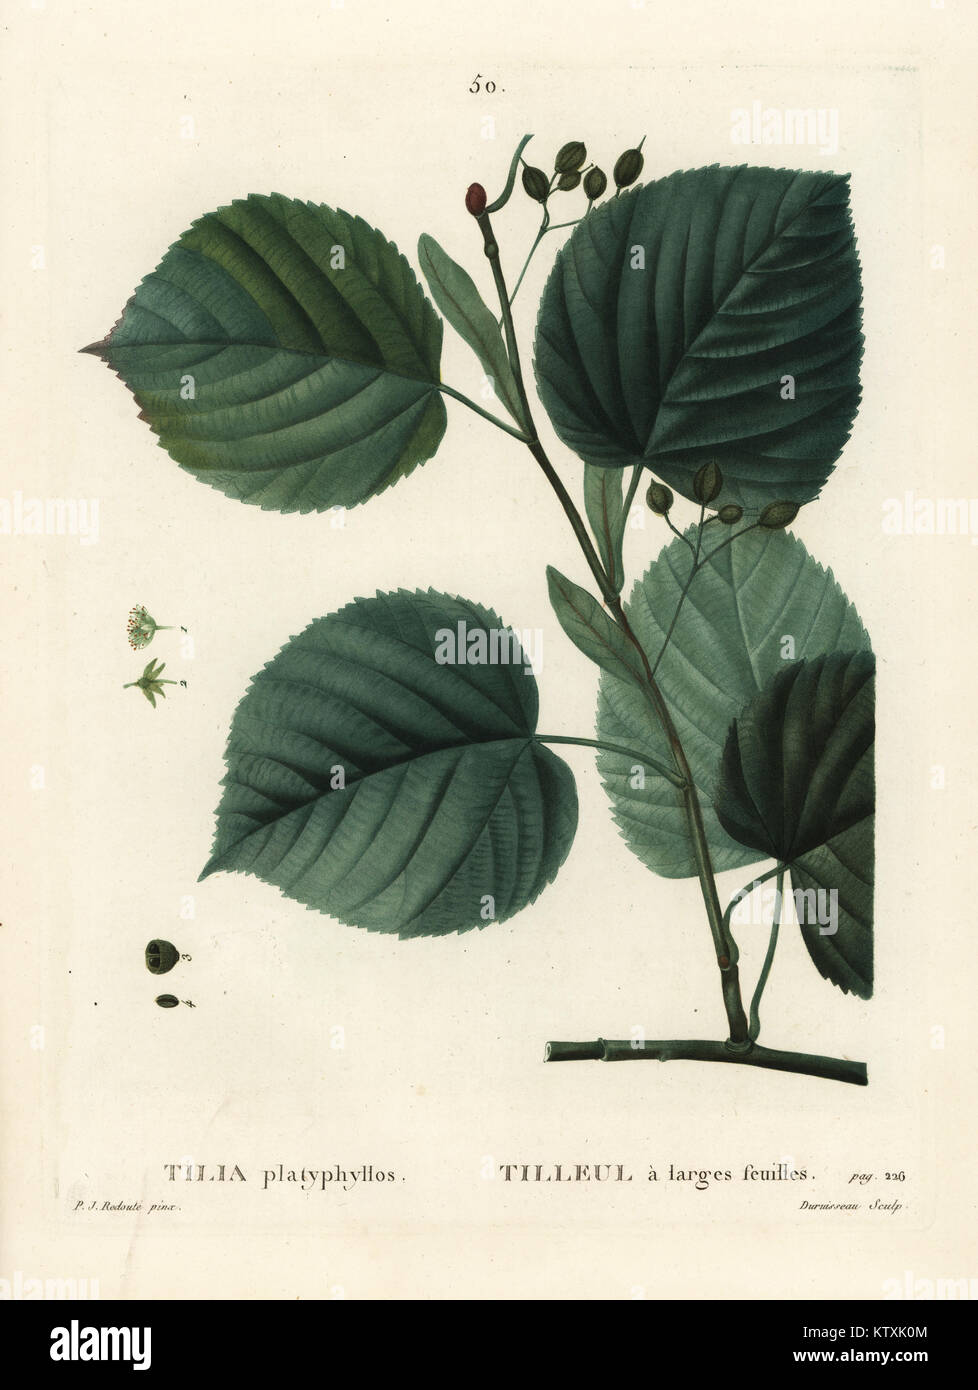 Largeleaf linden tree, Tilia platyphyllos. Handcoloured stipple engraving by Du Ruisseau after an illustration by Stock Photo